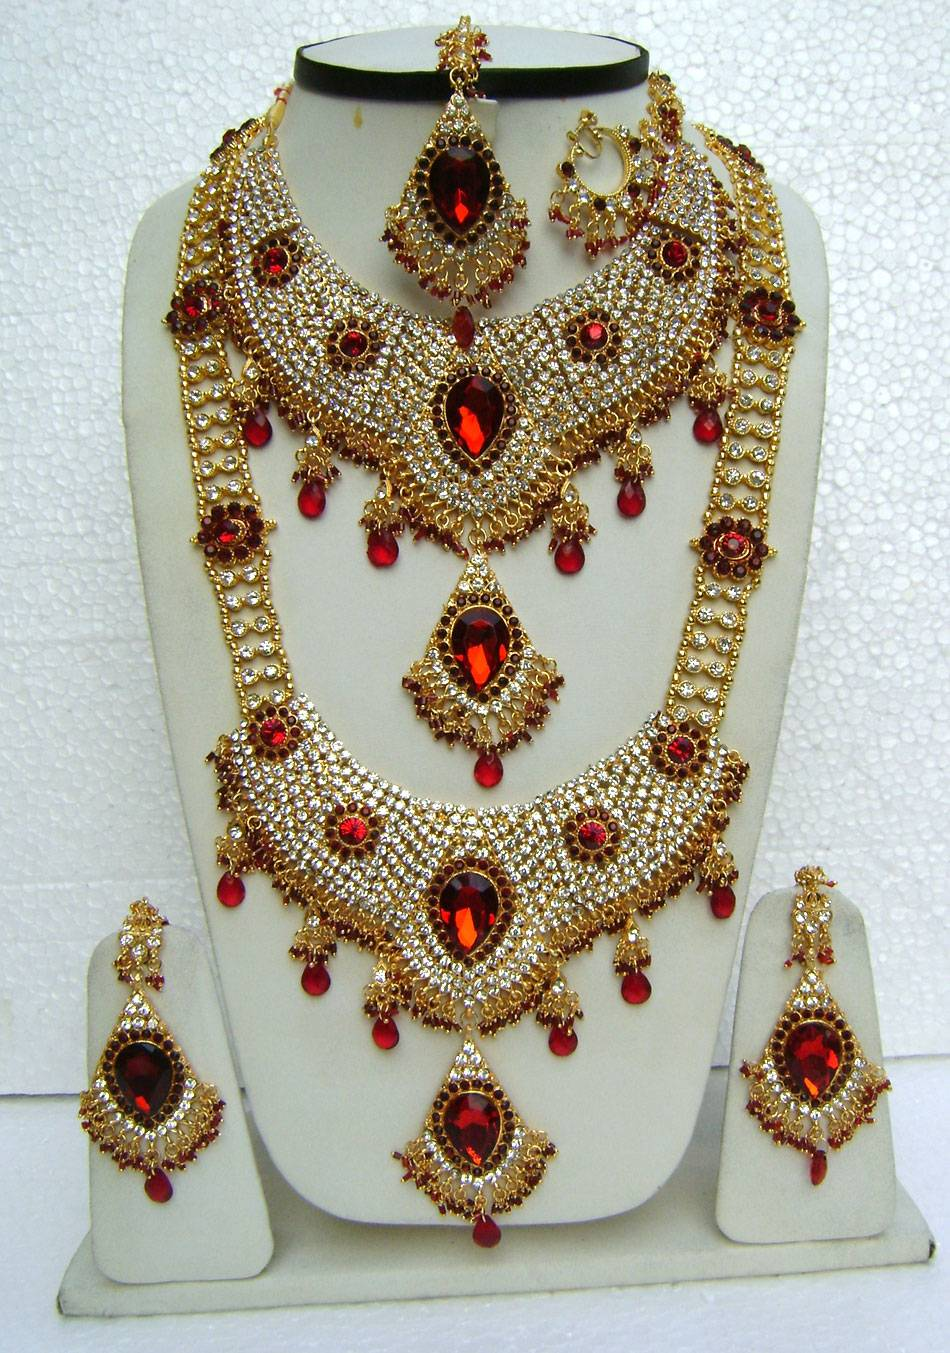 AMERICAN DIAMOND JEWELRY SAREES PARTYWEAR KUNDAN NECKLACE WEDDING